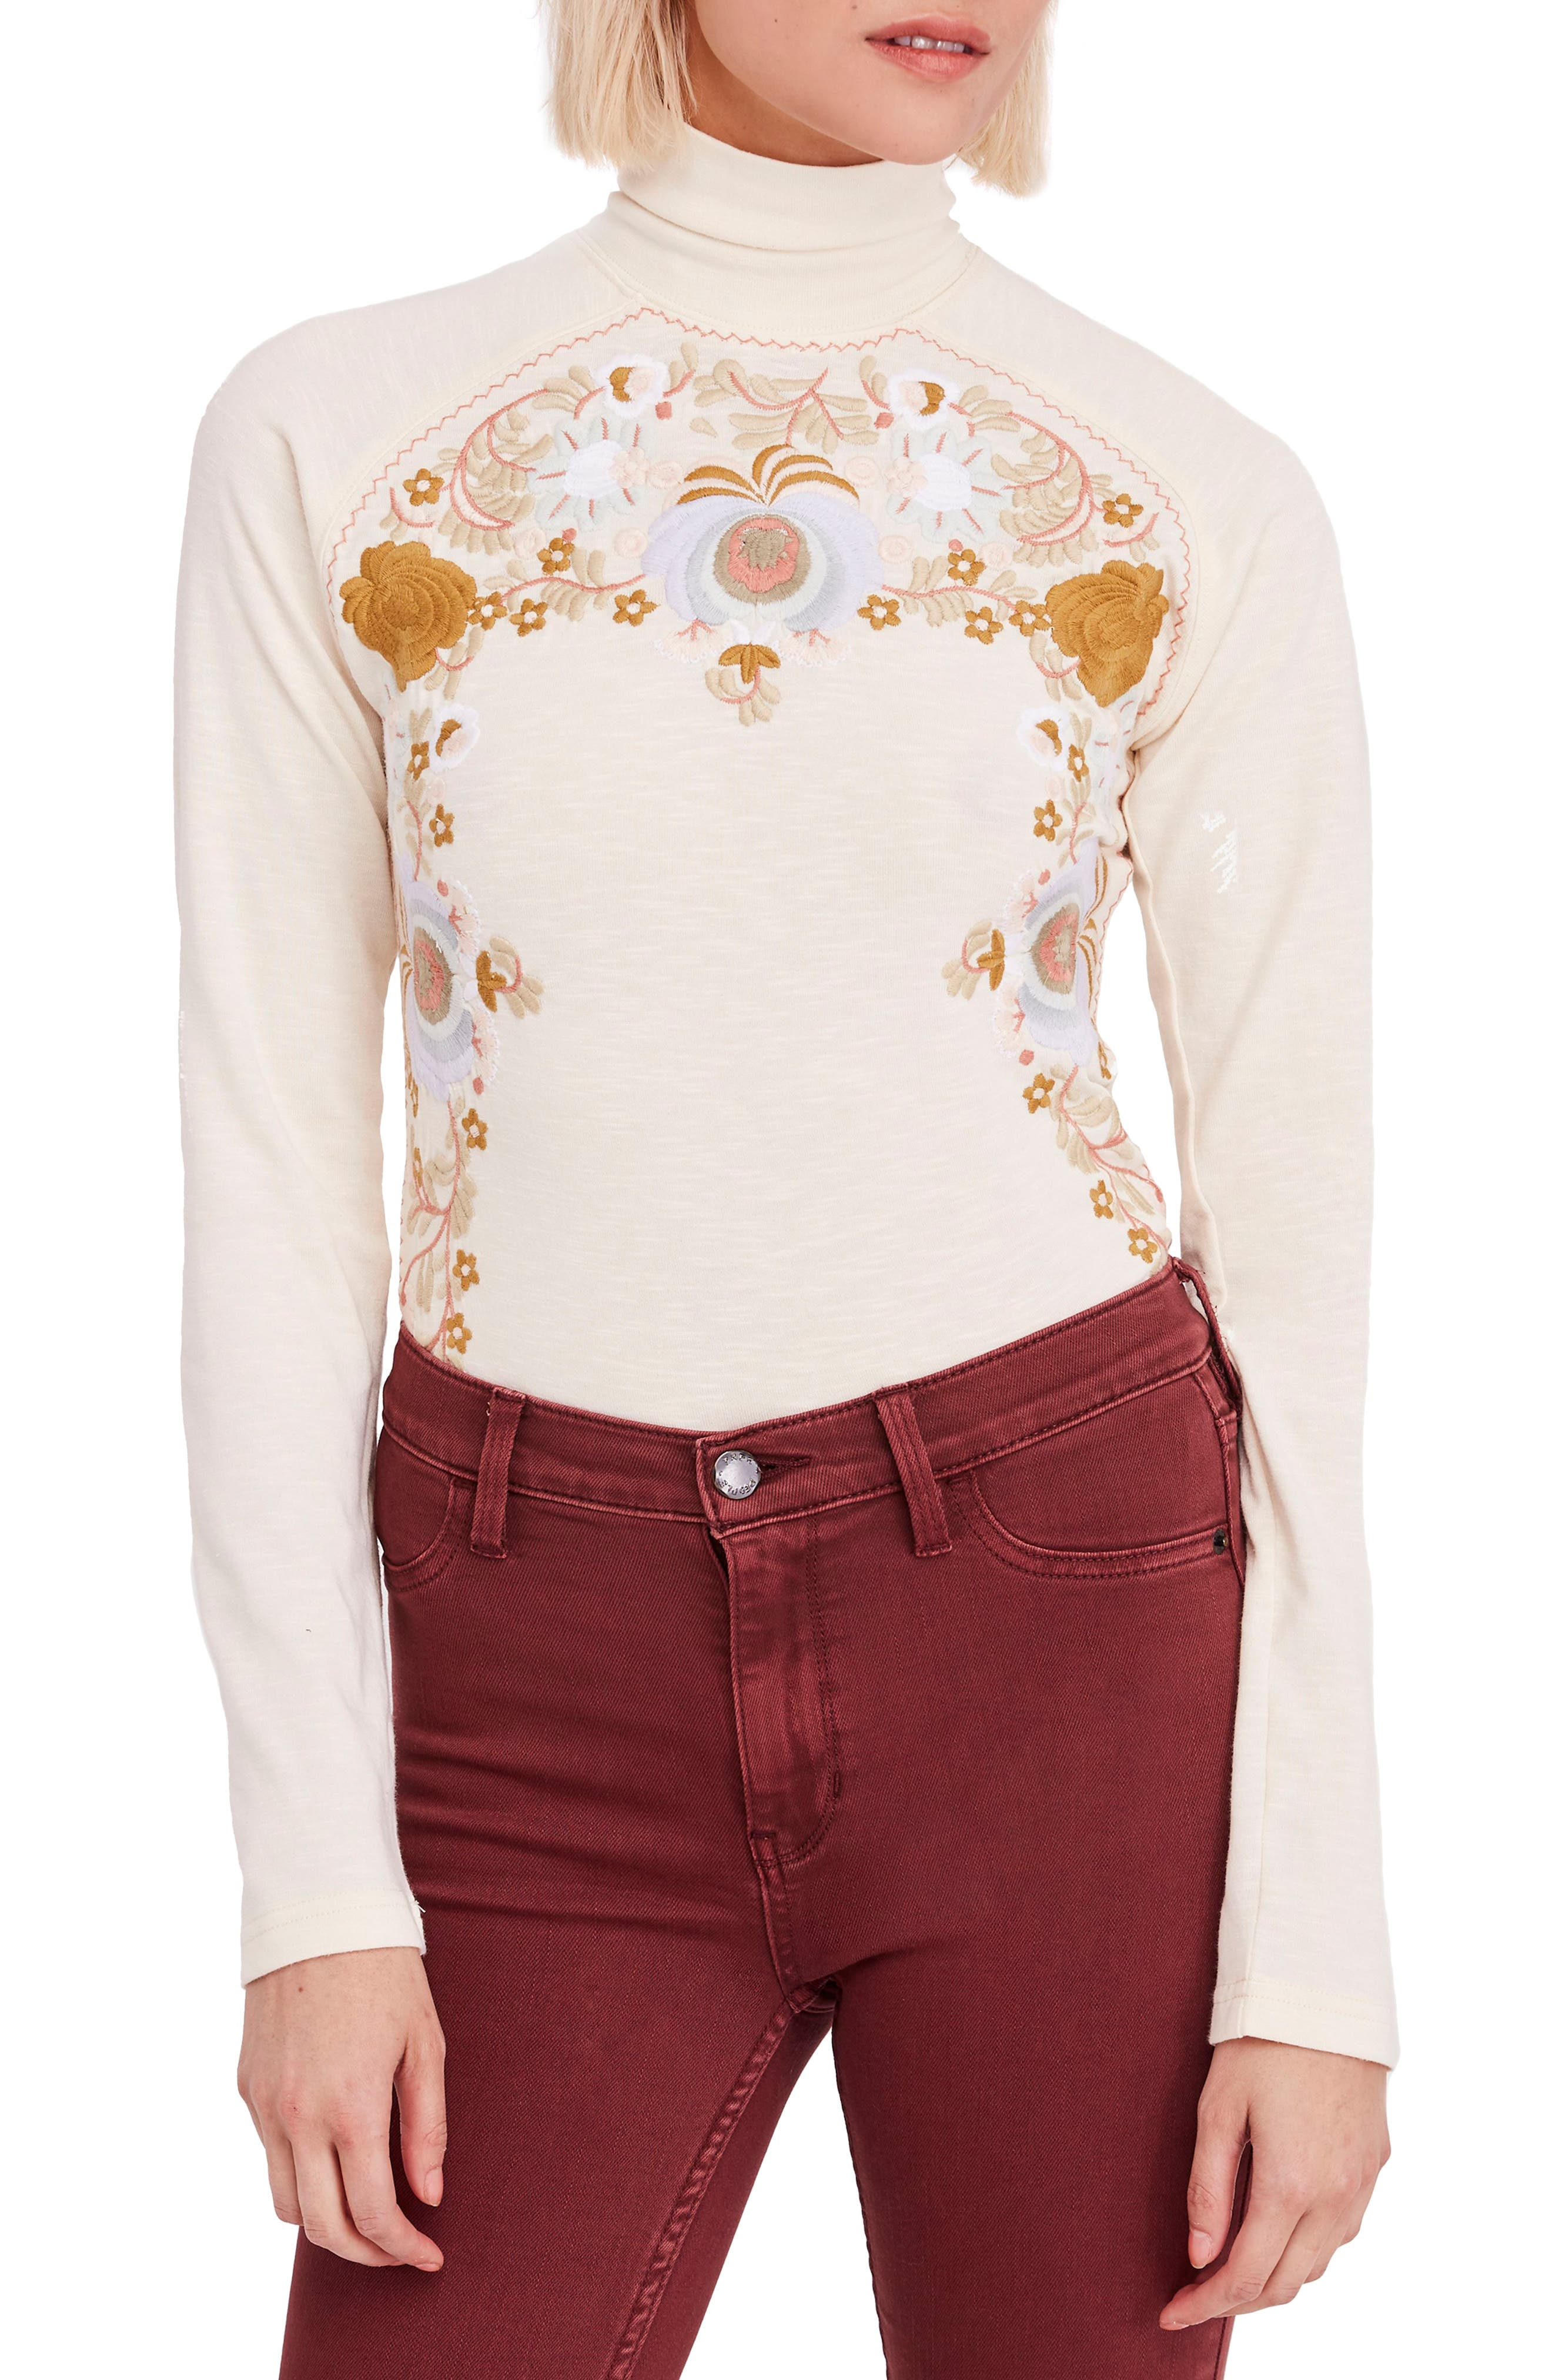 Women's 70s Shirts, Blouses, Hippie Tops Womens Free People Disco Rose Top Size X-Small - Ivory $58.80 AT vintagedancer.com